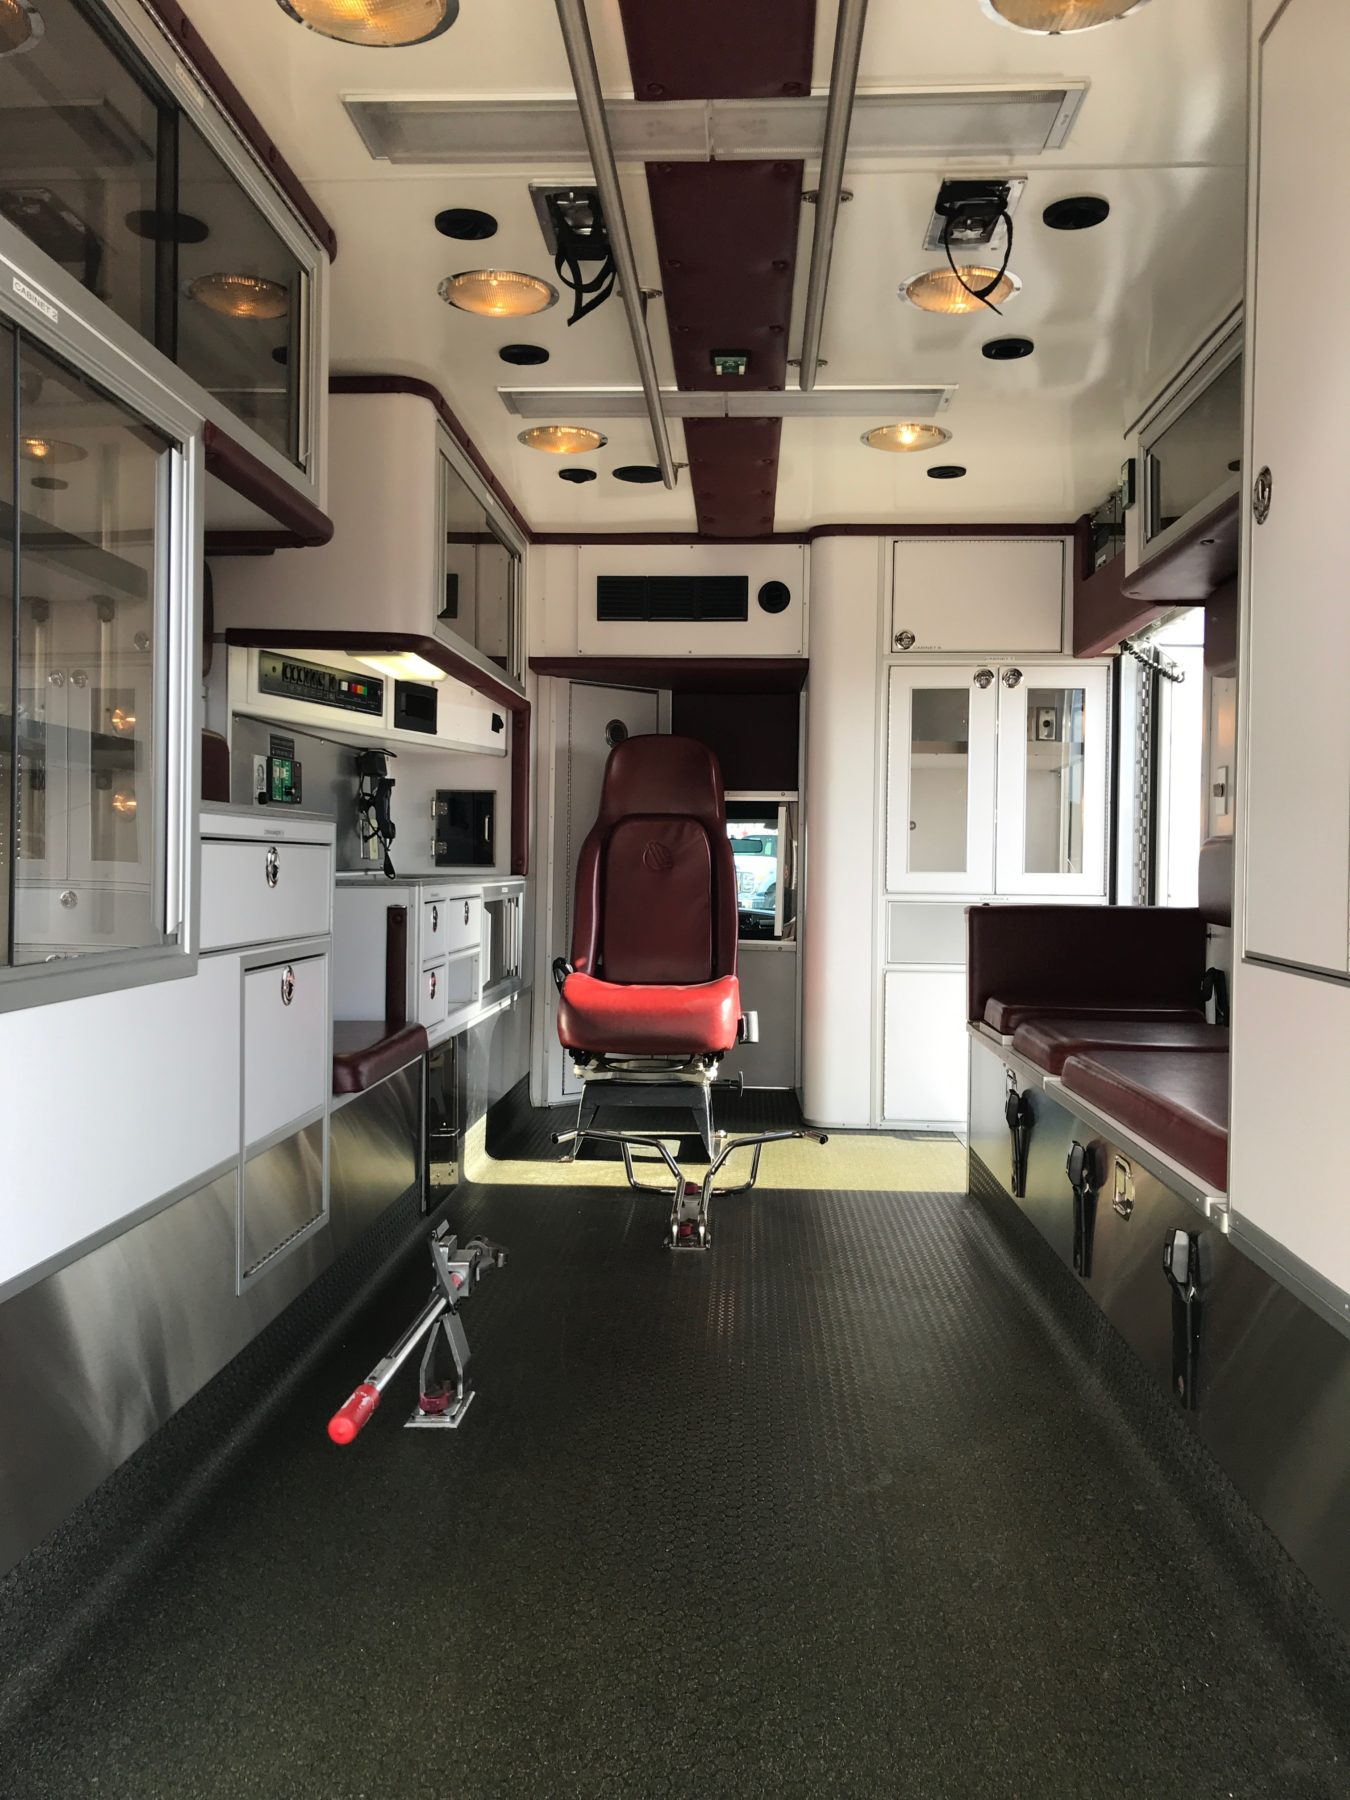 2007 Ford F450 Type 1 Ambulance For Sale – Picture 2